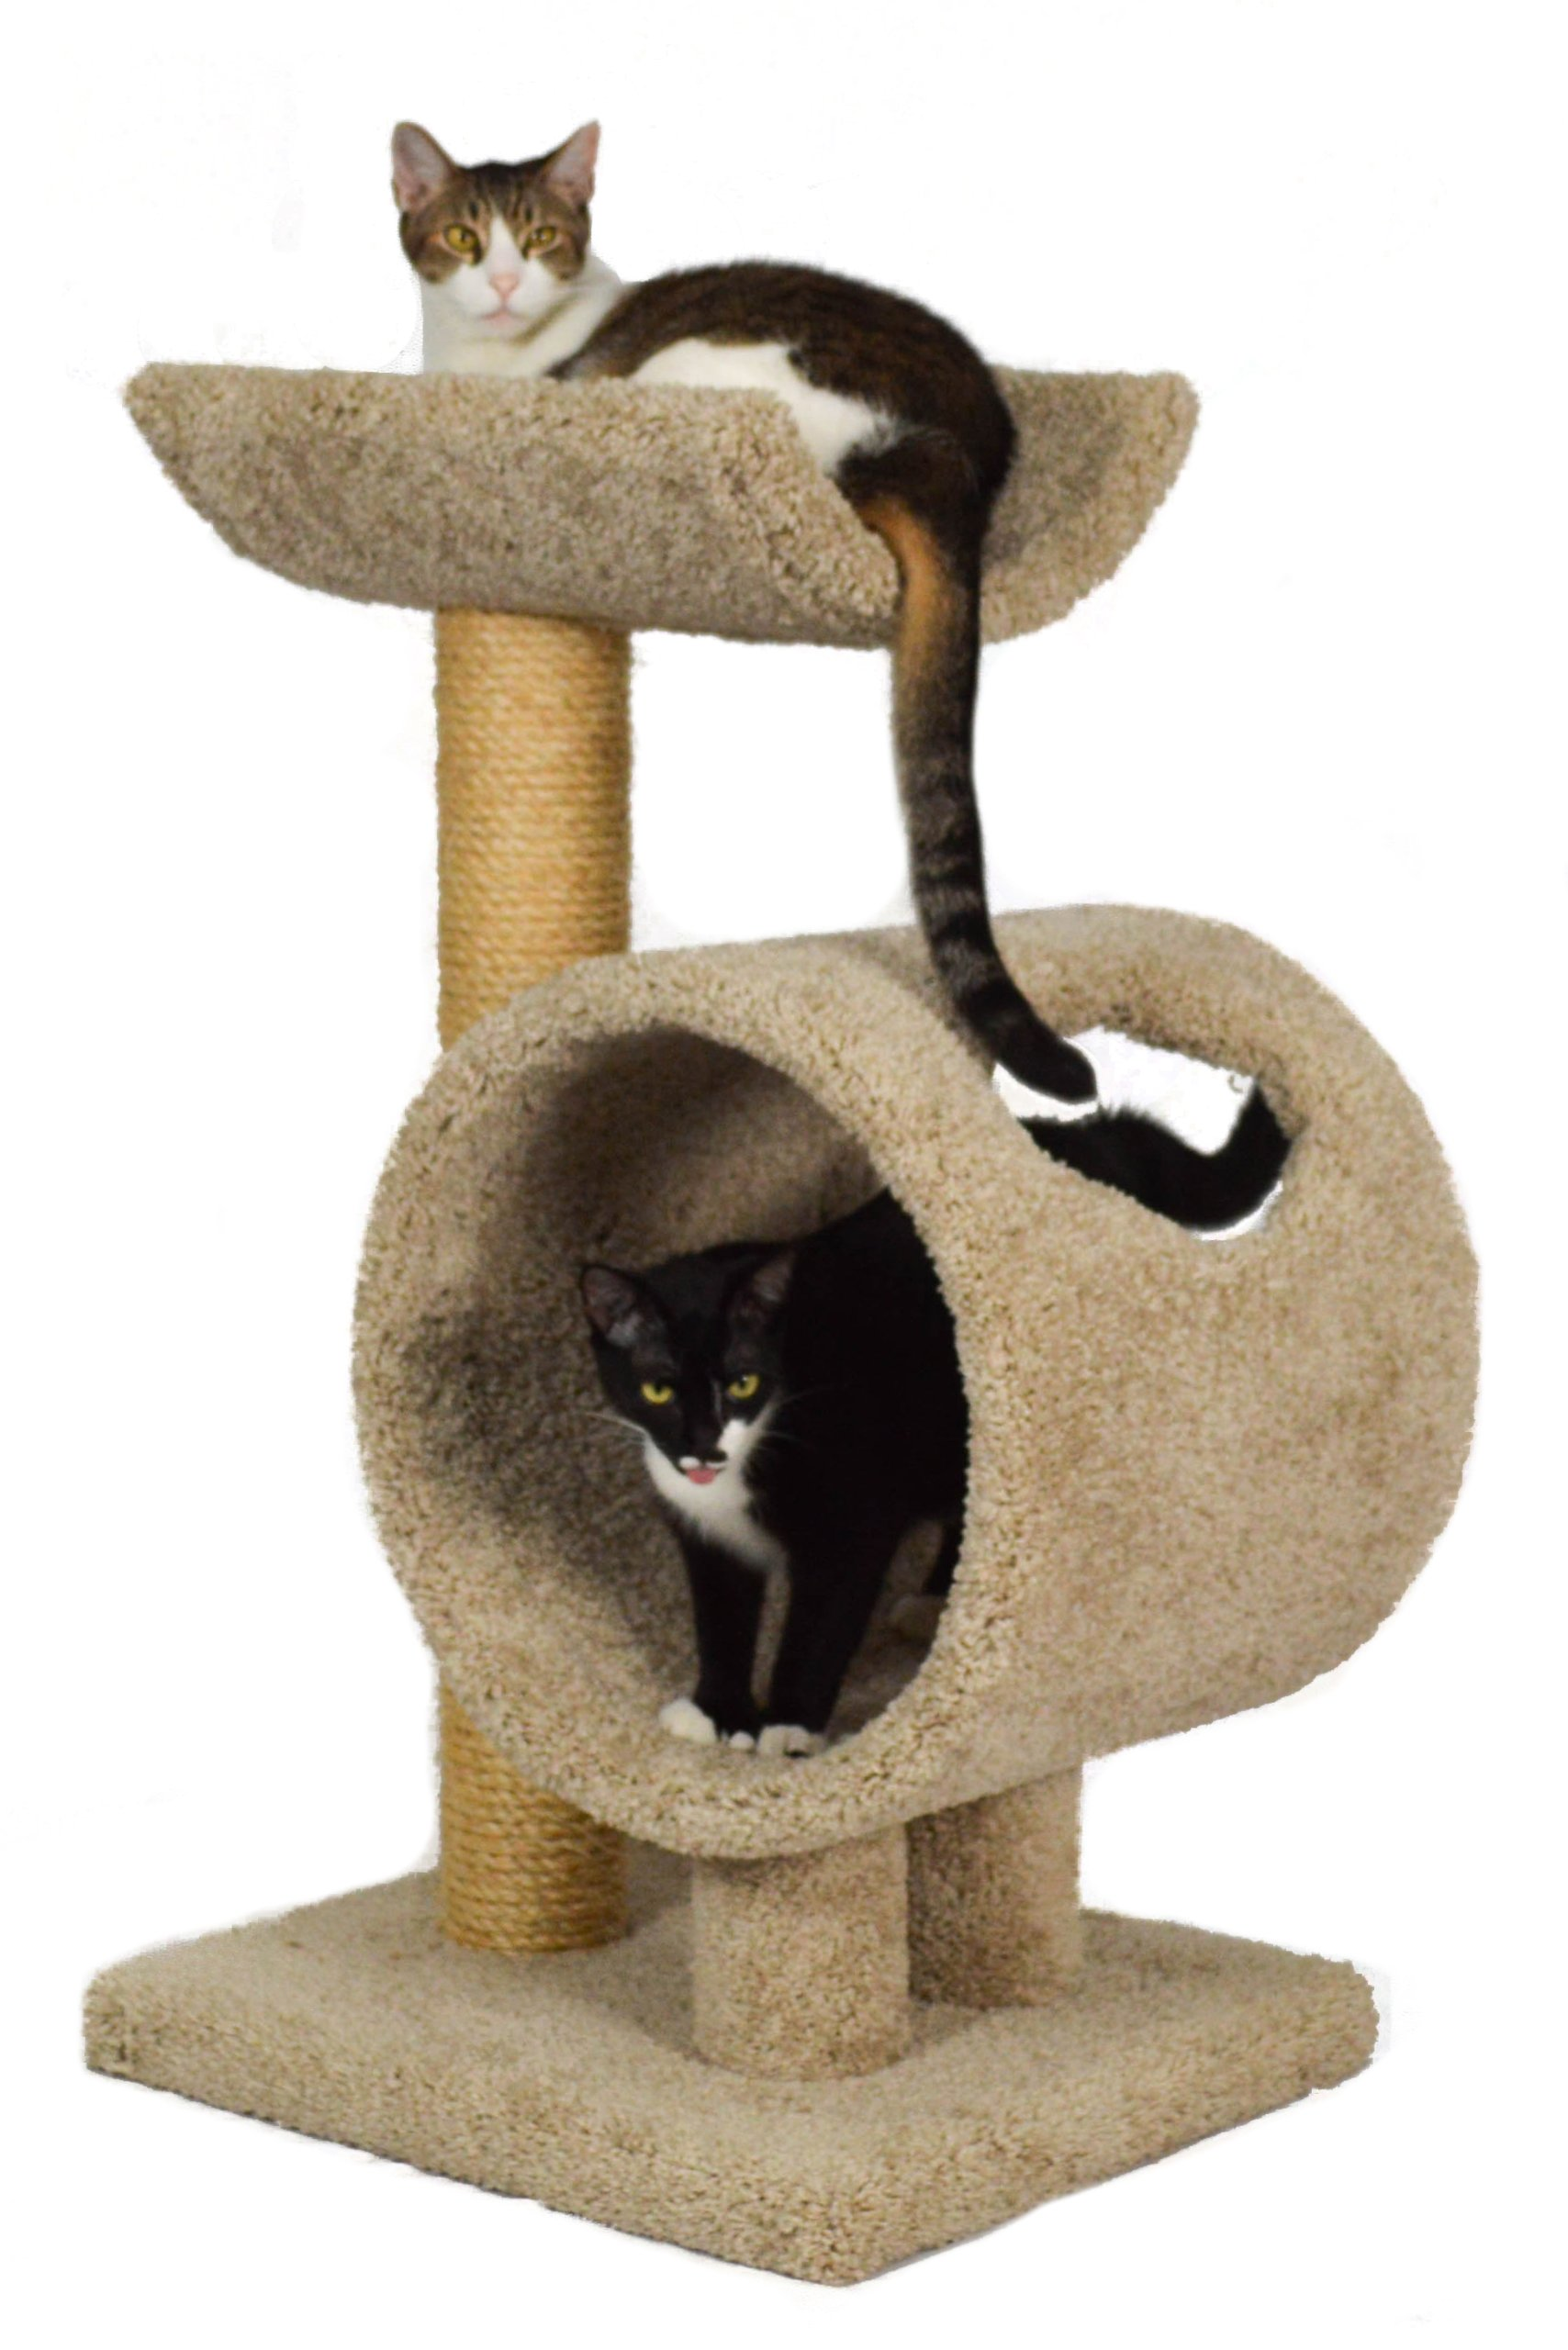 Molly and Friends ''Loft and Round'' Premium Handmade 2-Tier Cat Tree with Sisal, Model 34, Beige